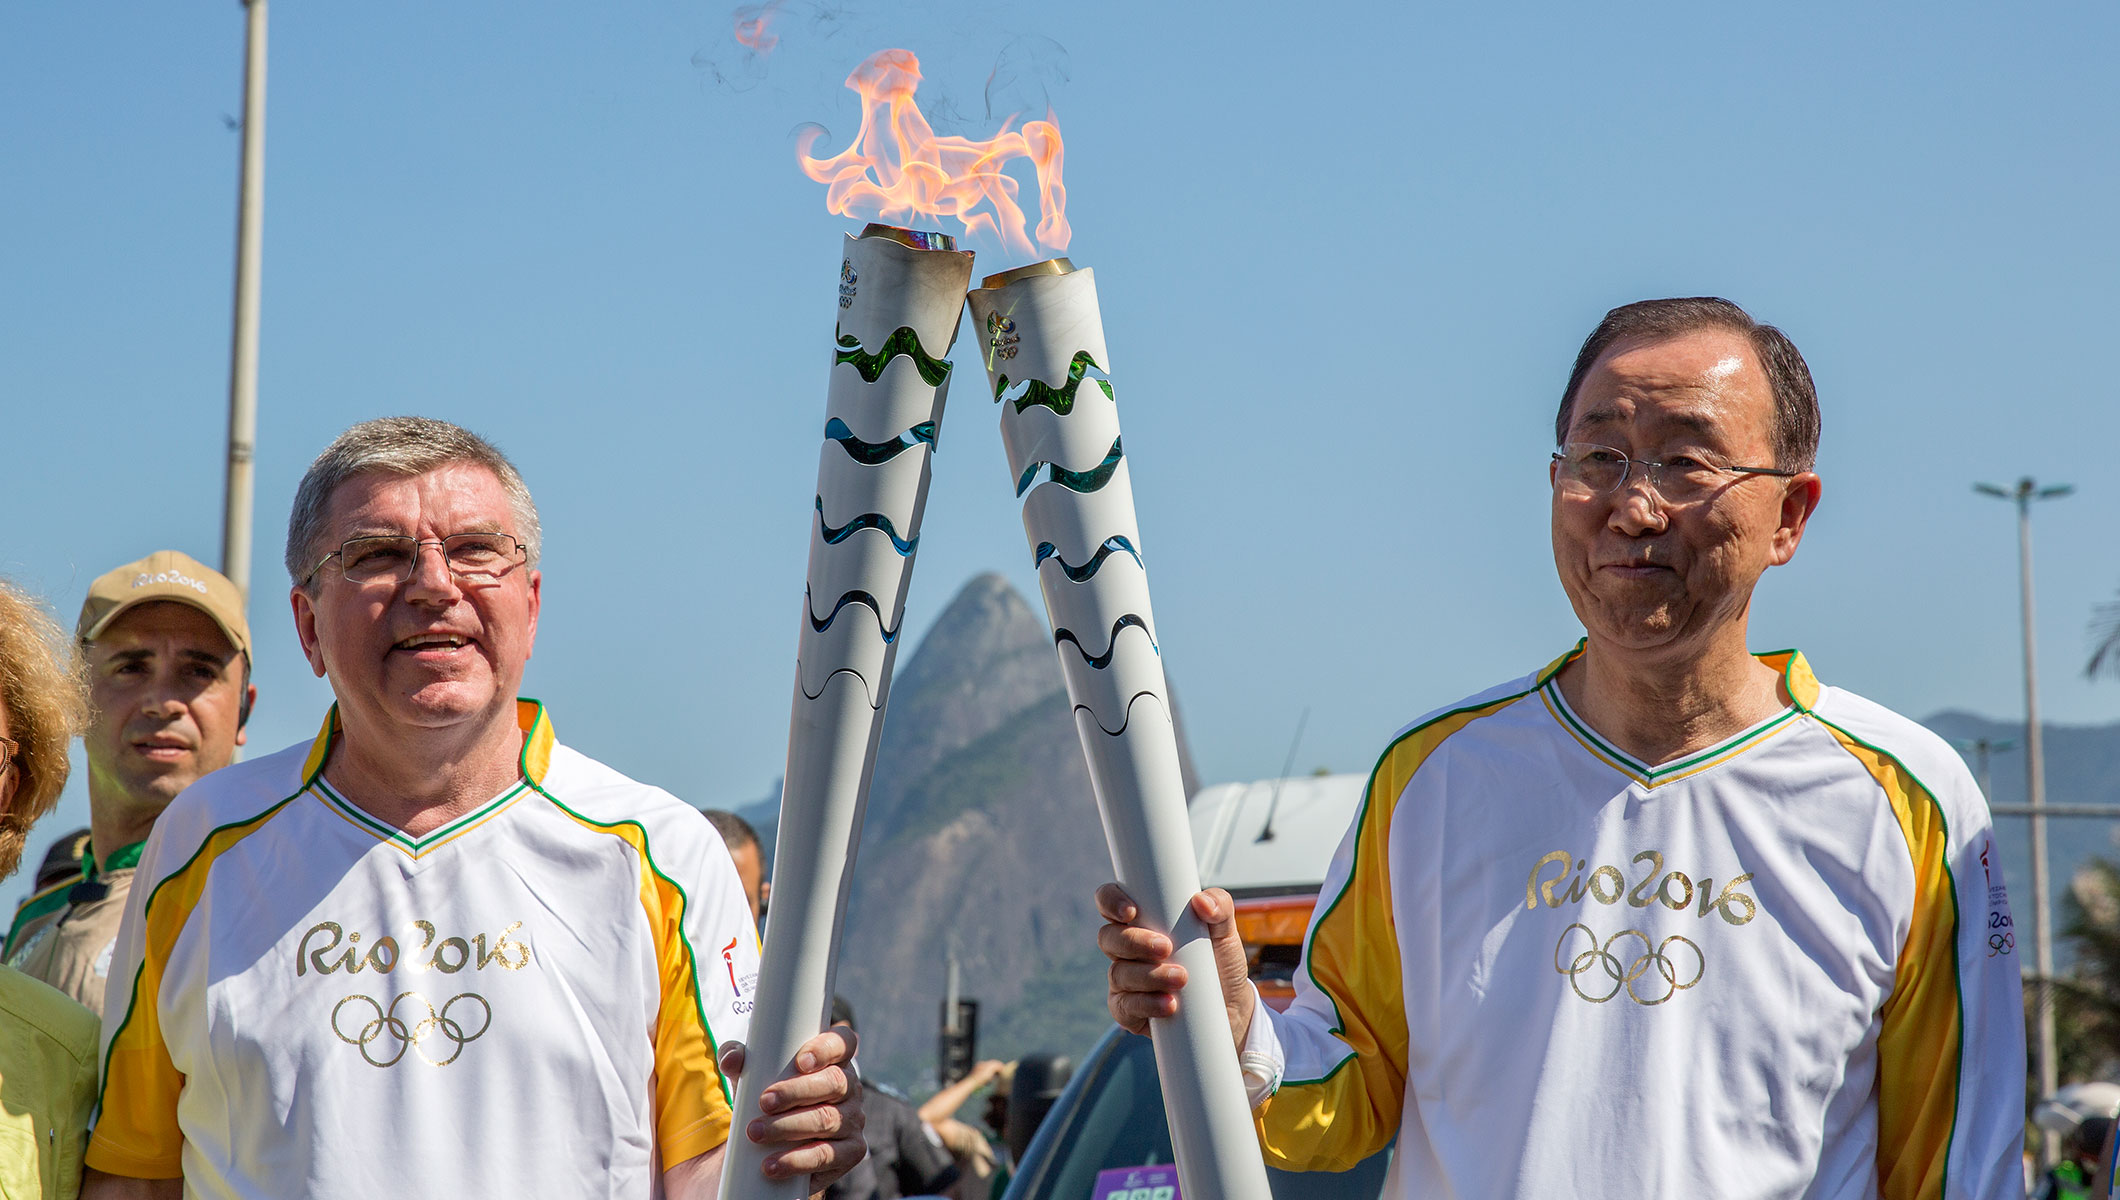 IOC President Thomas Bach and United Nations Secretary General Ban Ki-moon at the Rio 2016 Torch Relay